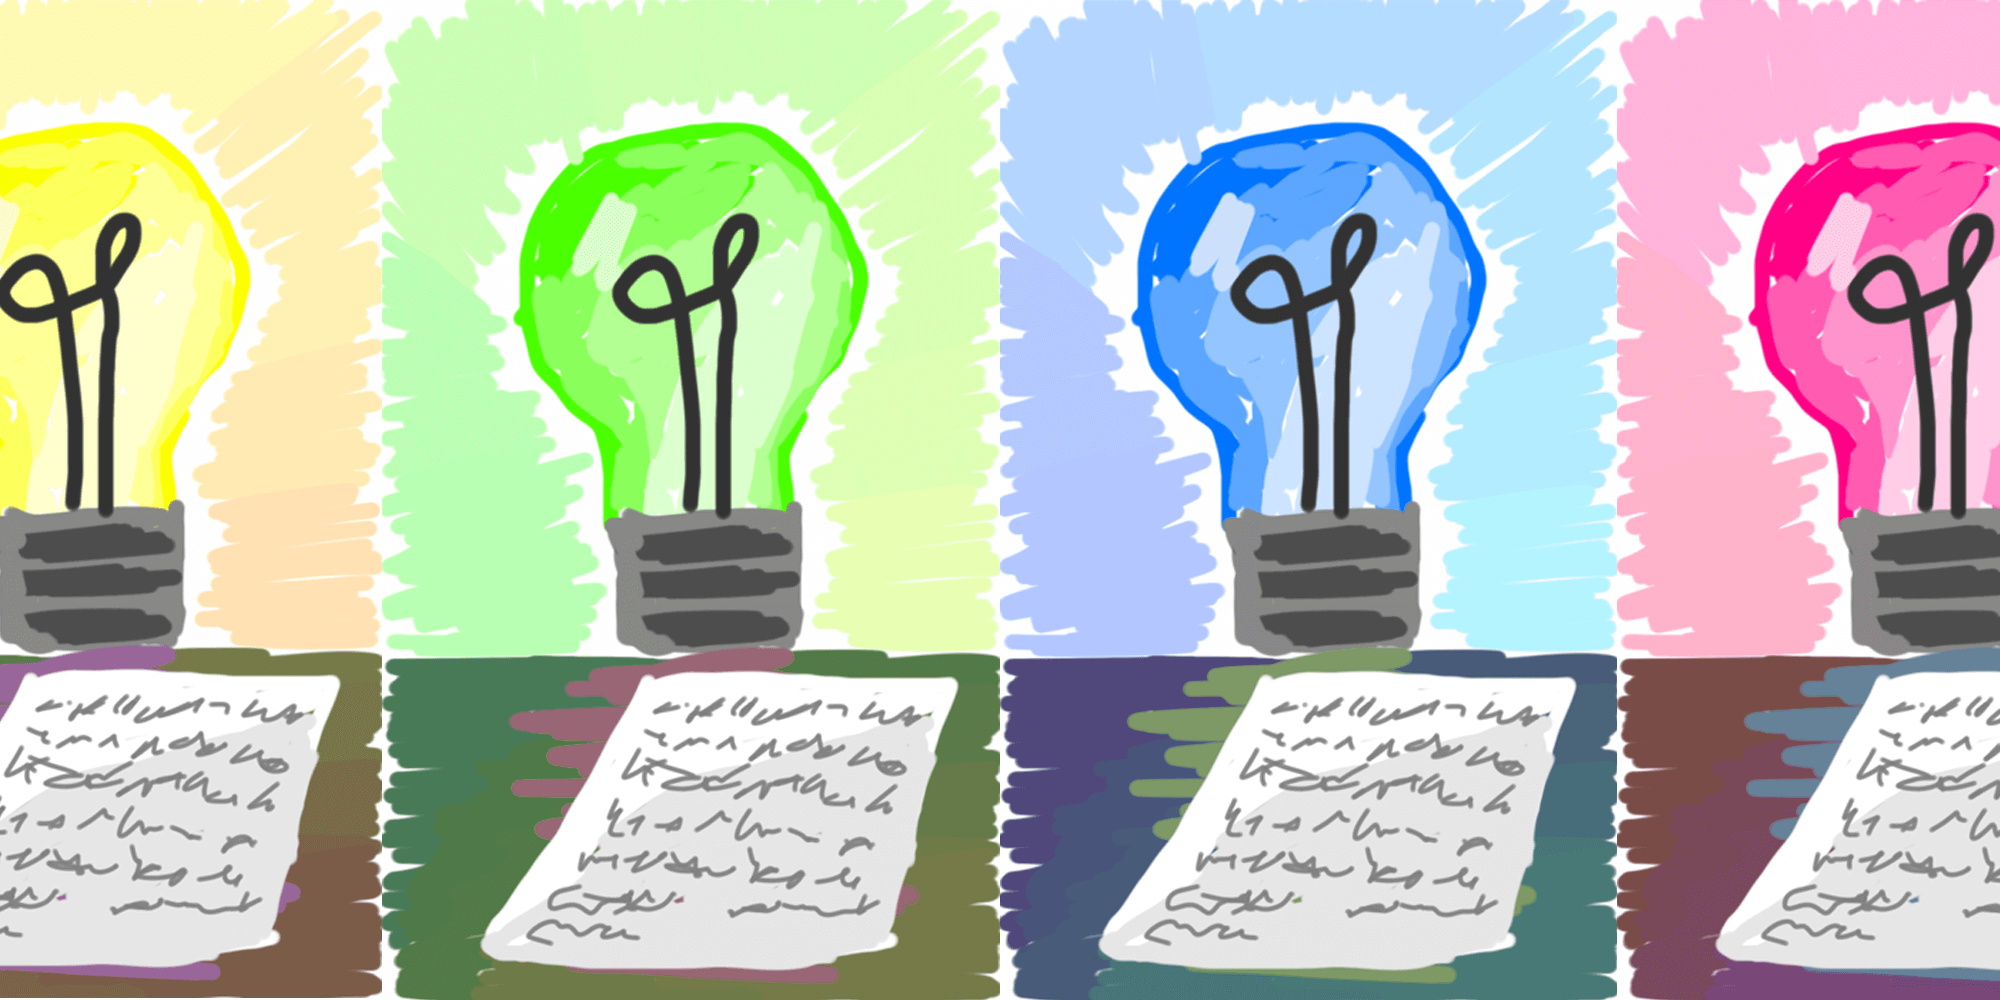 drawing of lightbulbs in different colors